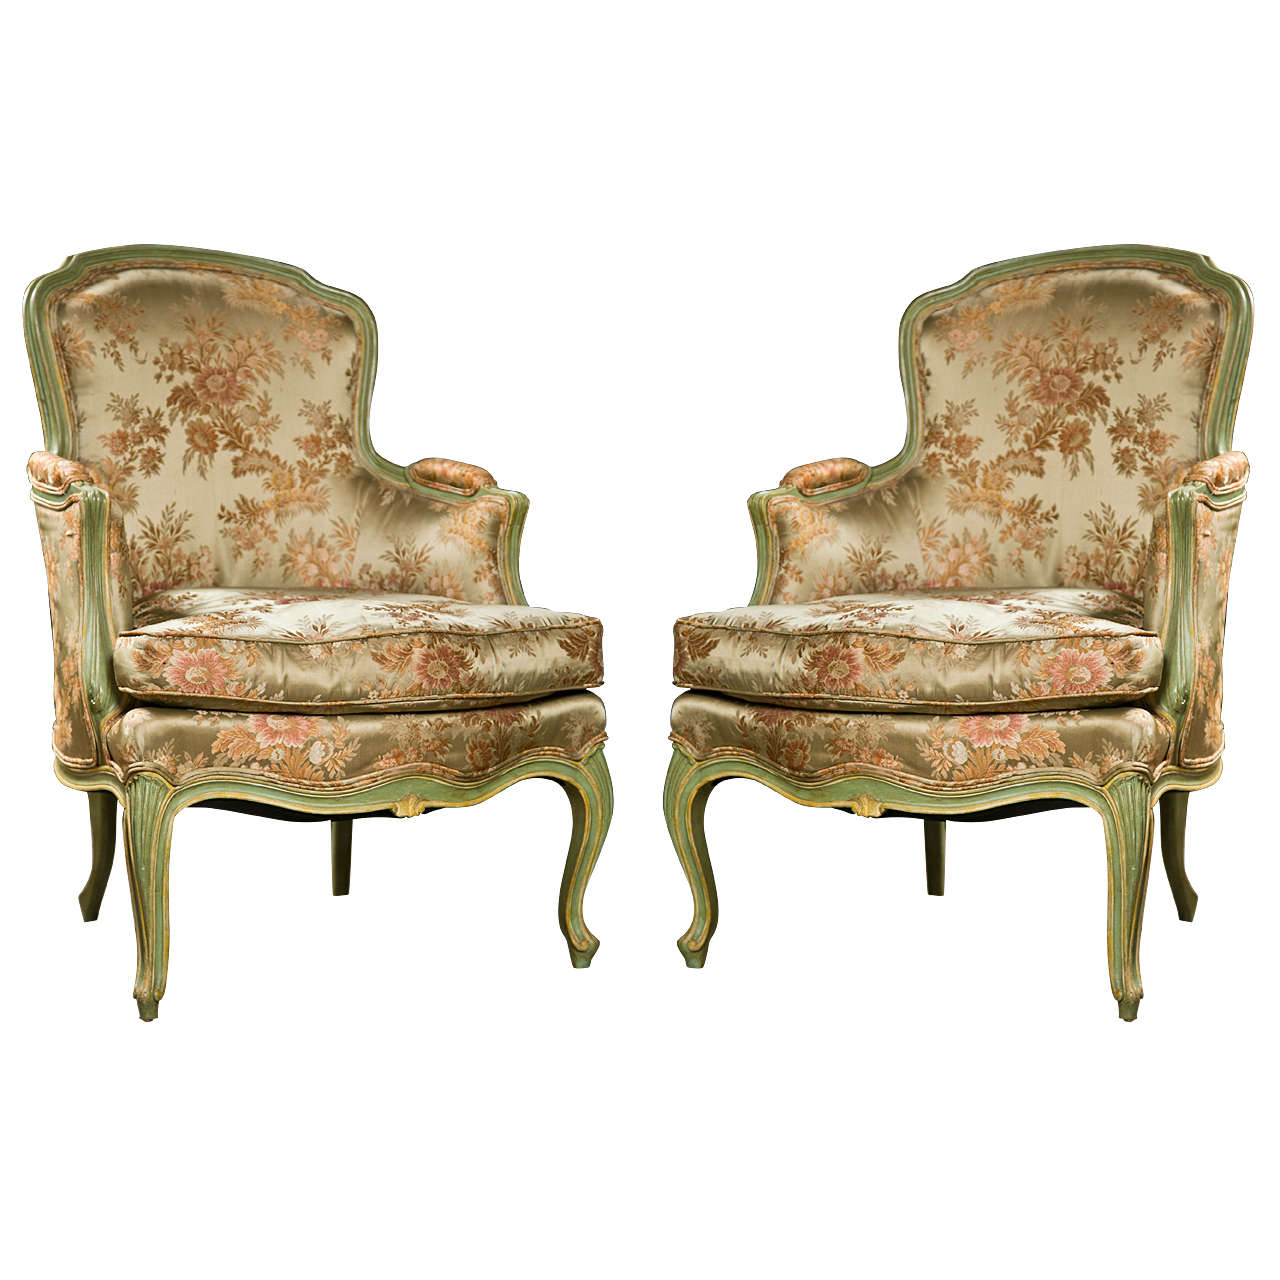 Bergere chair and ottoman - Pair Of French Louis Xvi Style Bergere Chairs